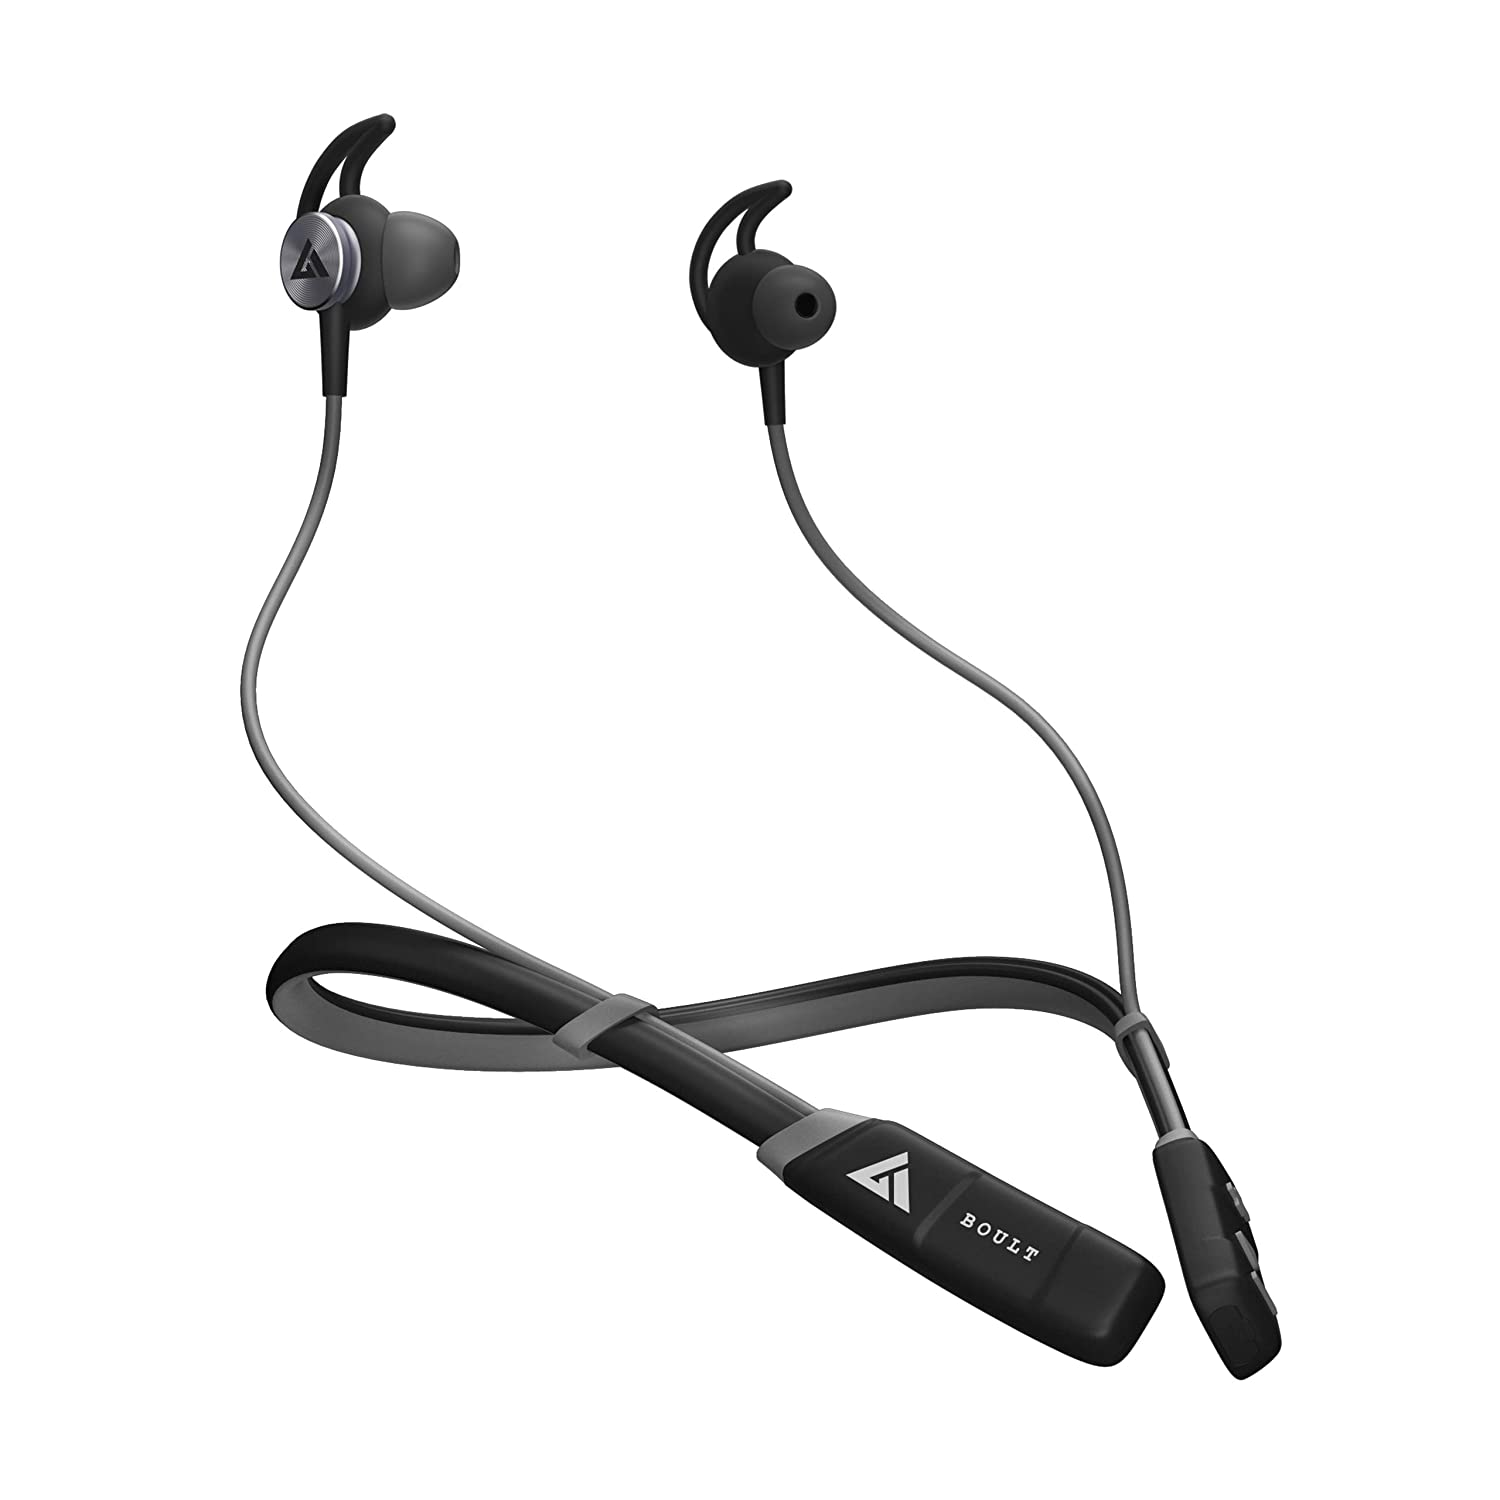 Boult Audio ProBass CurvePro Neckband in-Ear Wireless Earphones with 12H Battery Life & Fast Charging, Vibration for Call Alert, IPX5 Sweatproof Headphones in-Built Microphone (Grey)